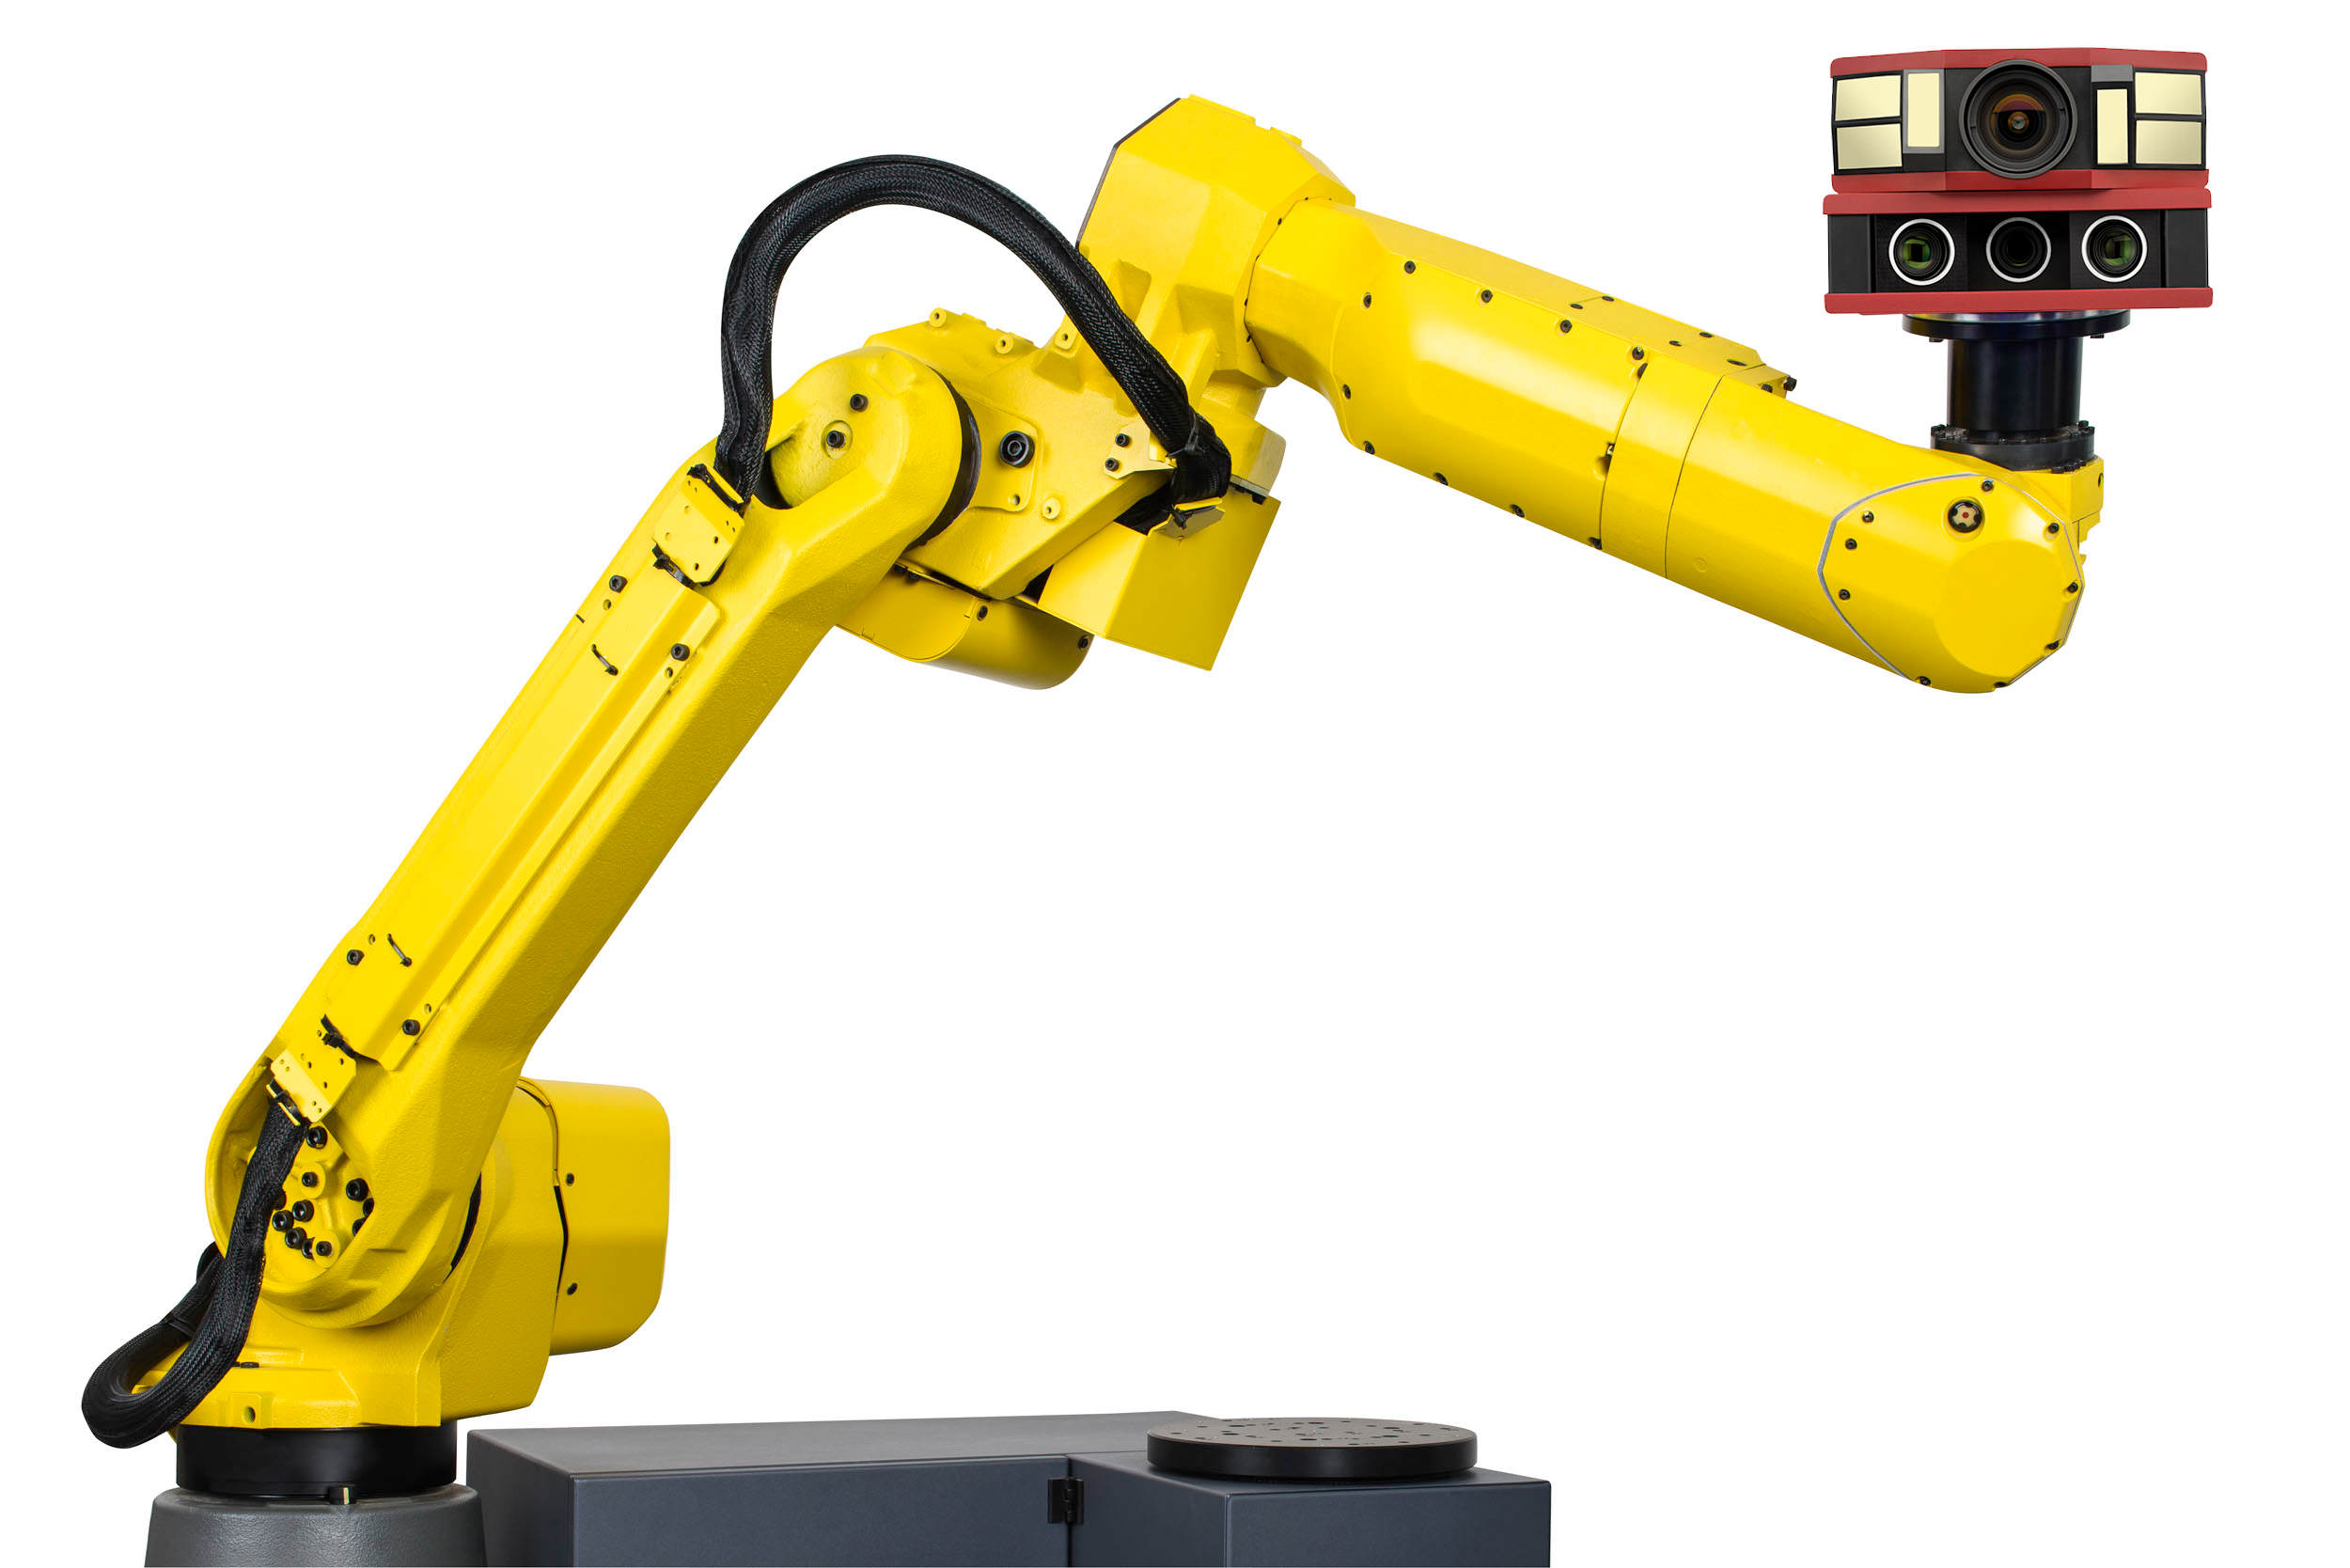 ATOS Core Kinematics with ATOS Plus for automated photogrammetry, 3D scanning, and inspection.